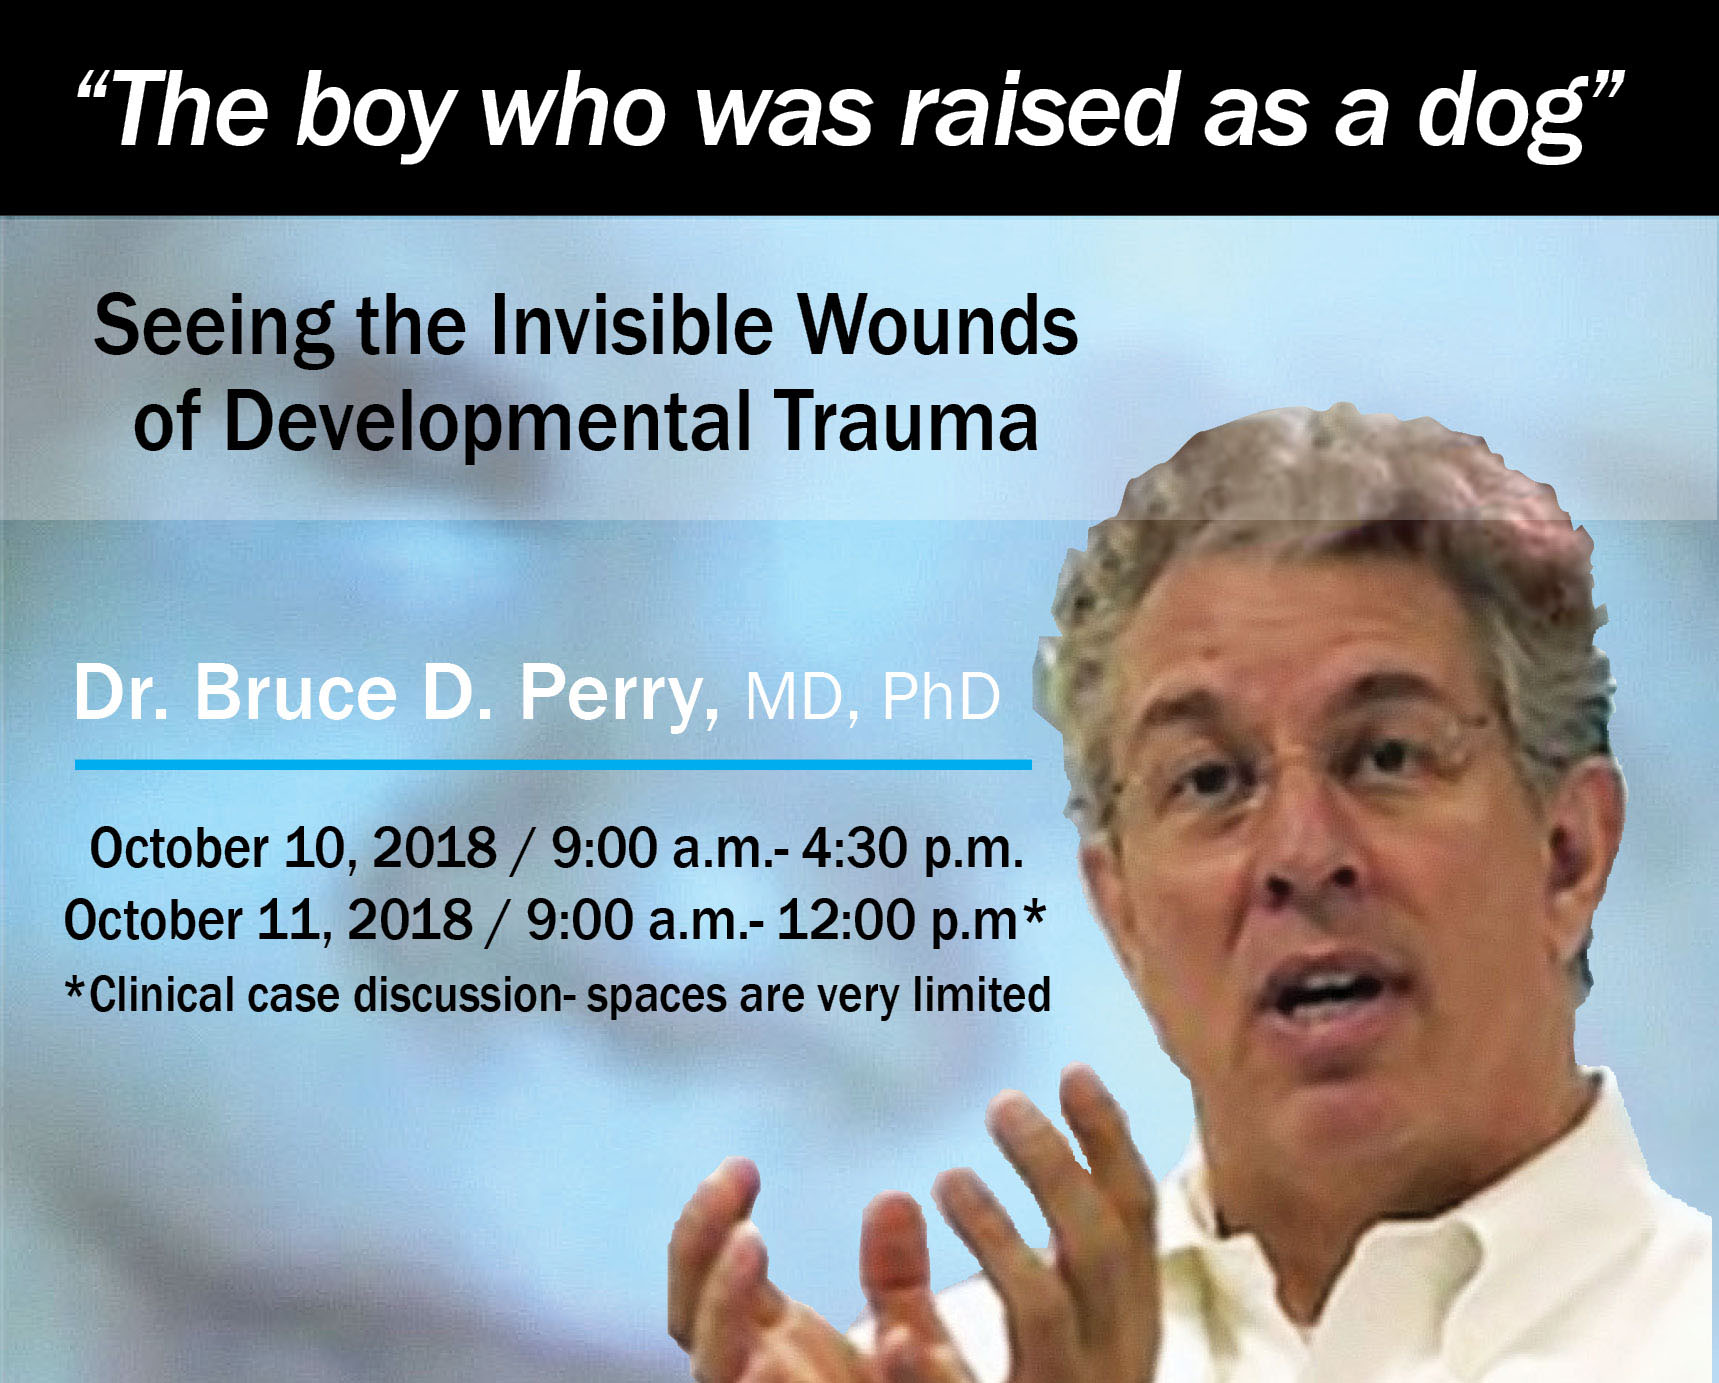 Seeing the Invisible Wounds of Developmental Trauma With Dr. Bruce Perry @ Victoria Inn & Conference Centre | Winnipeg | Manitoba | Canada